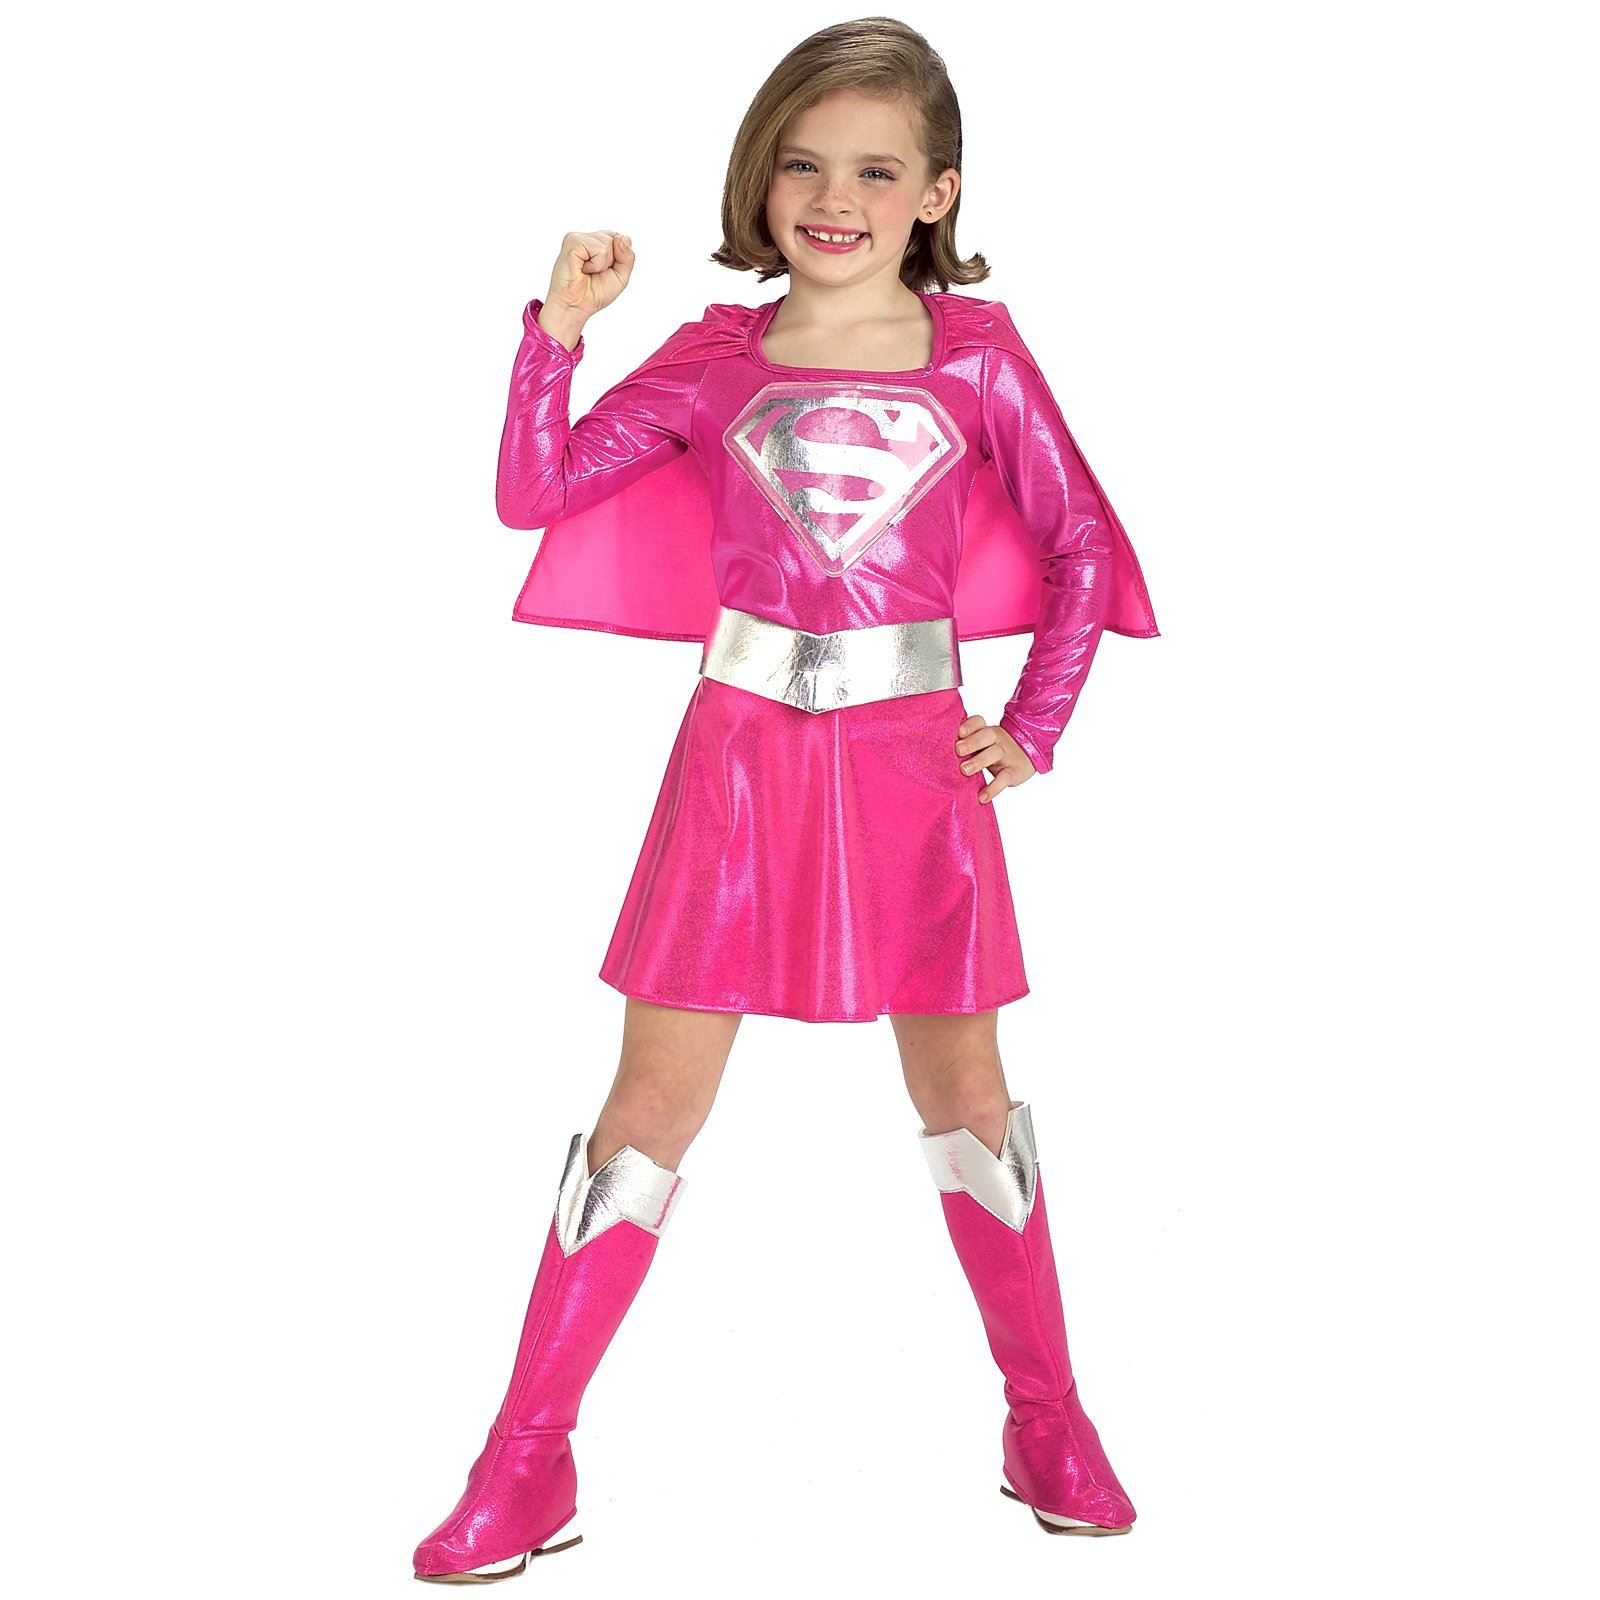 Kids Halloween Costumes Pictures Pink Super Girl Kids Halloween